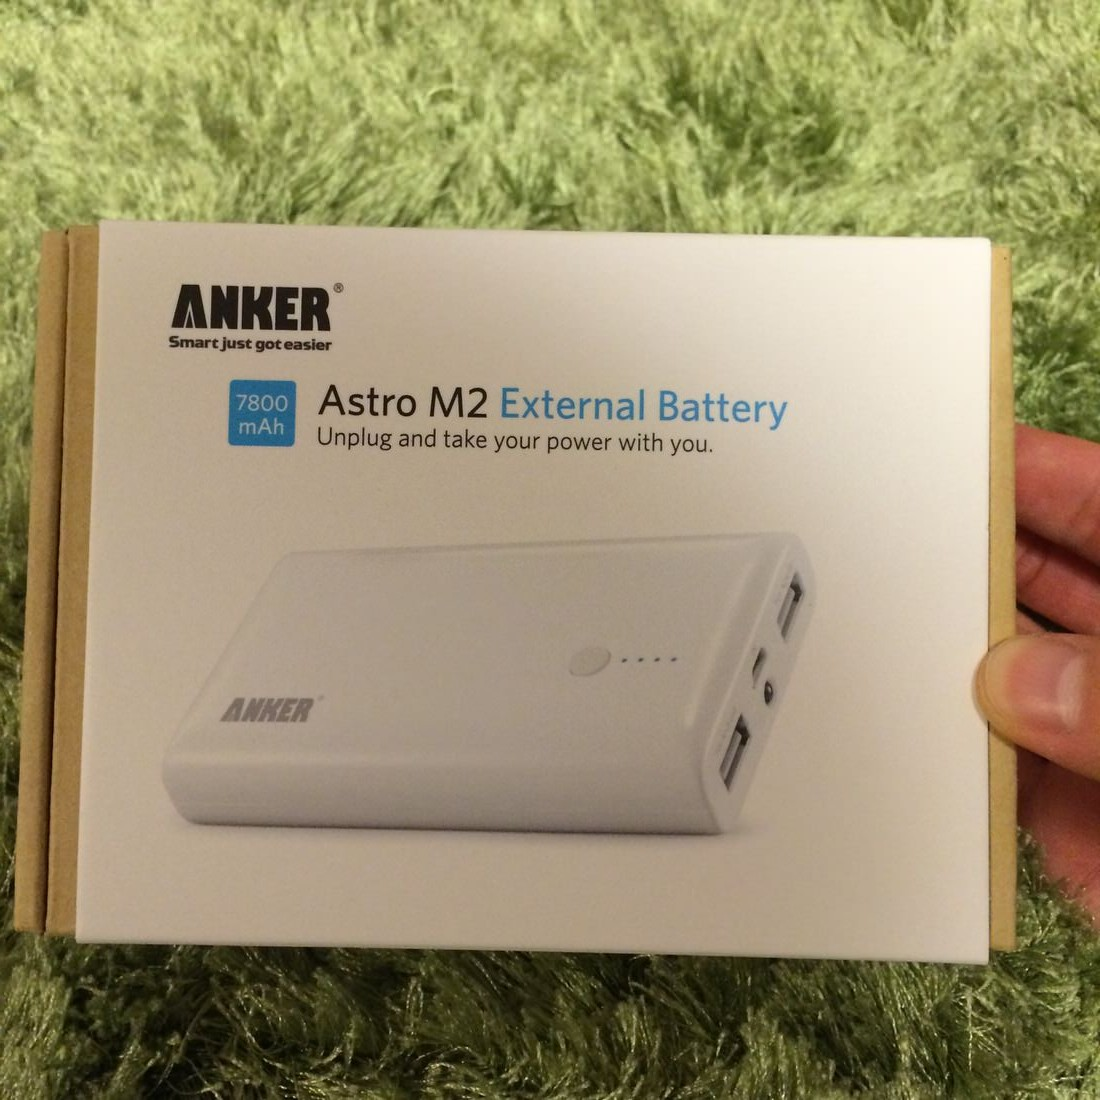 Anker Astro M2モバイルバッテリーを購入!AndroidもiPhoneも高速で充電を!